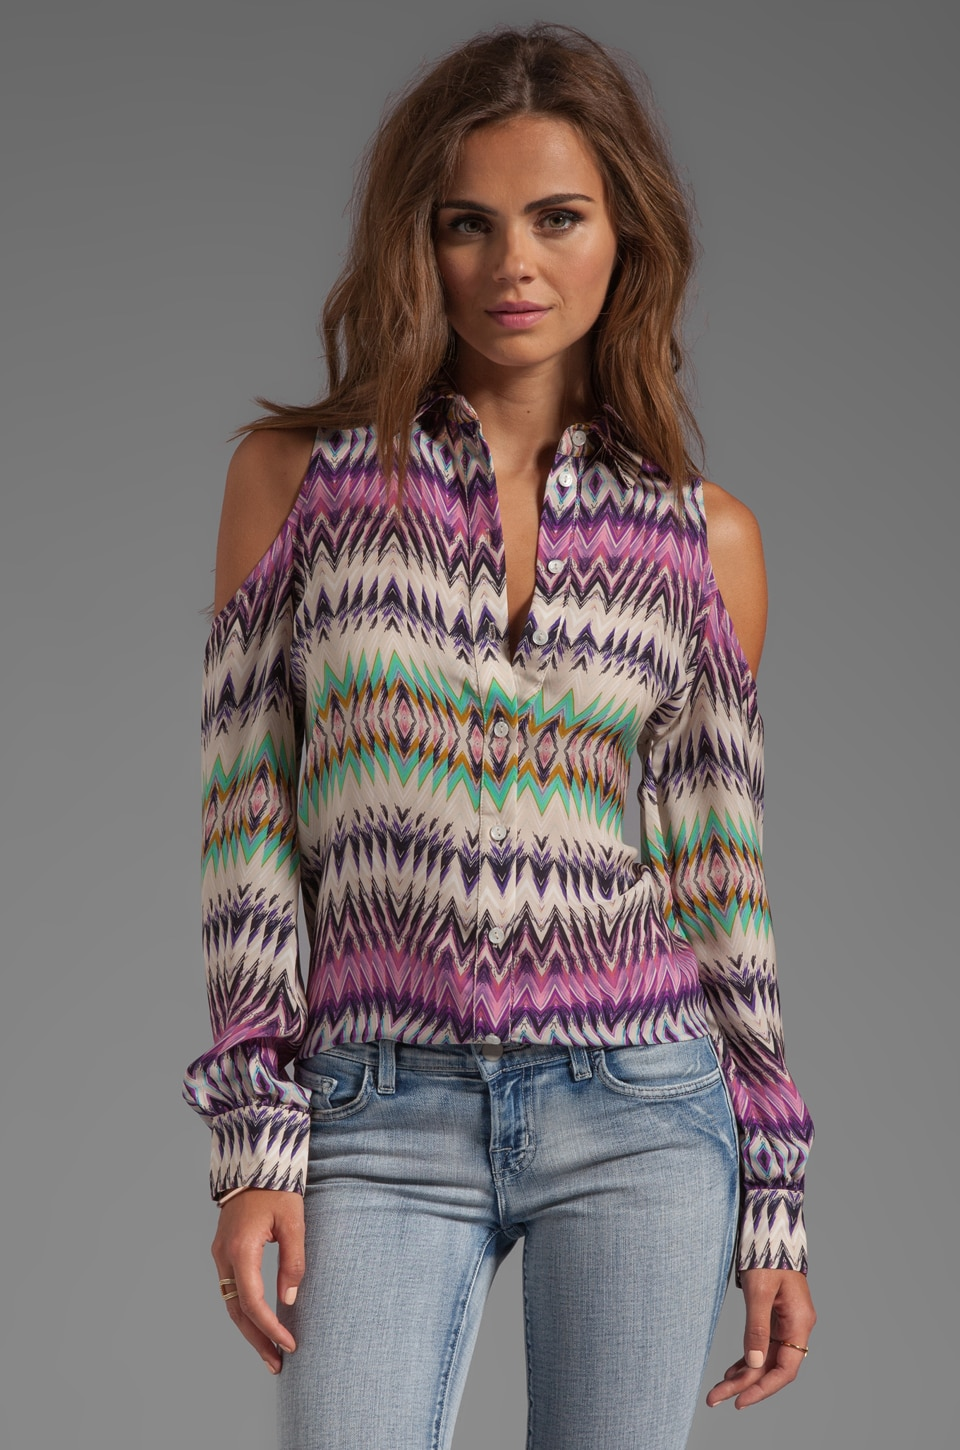 Parker Luella Open Shoulder Top in Shockwave